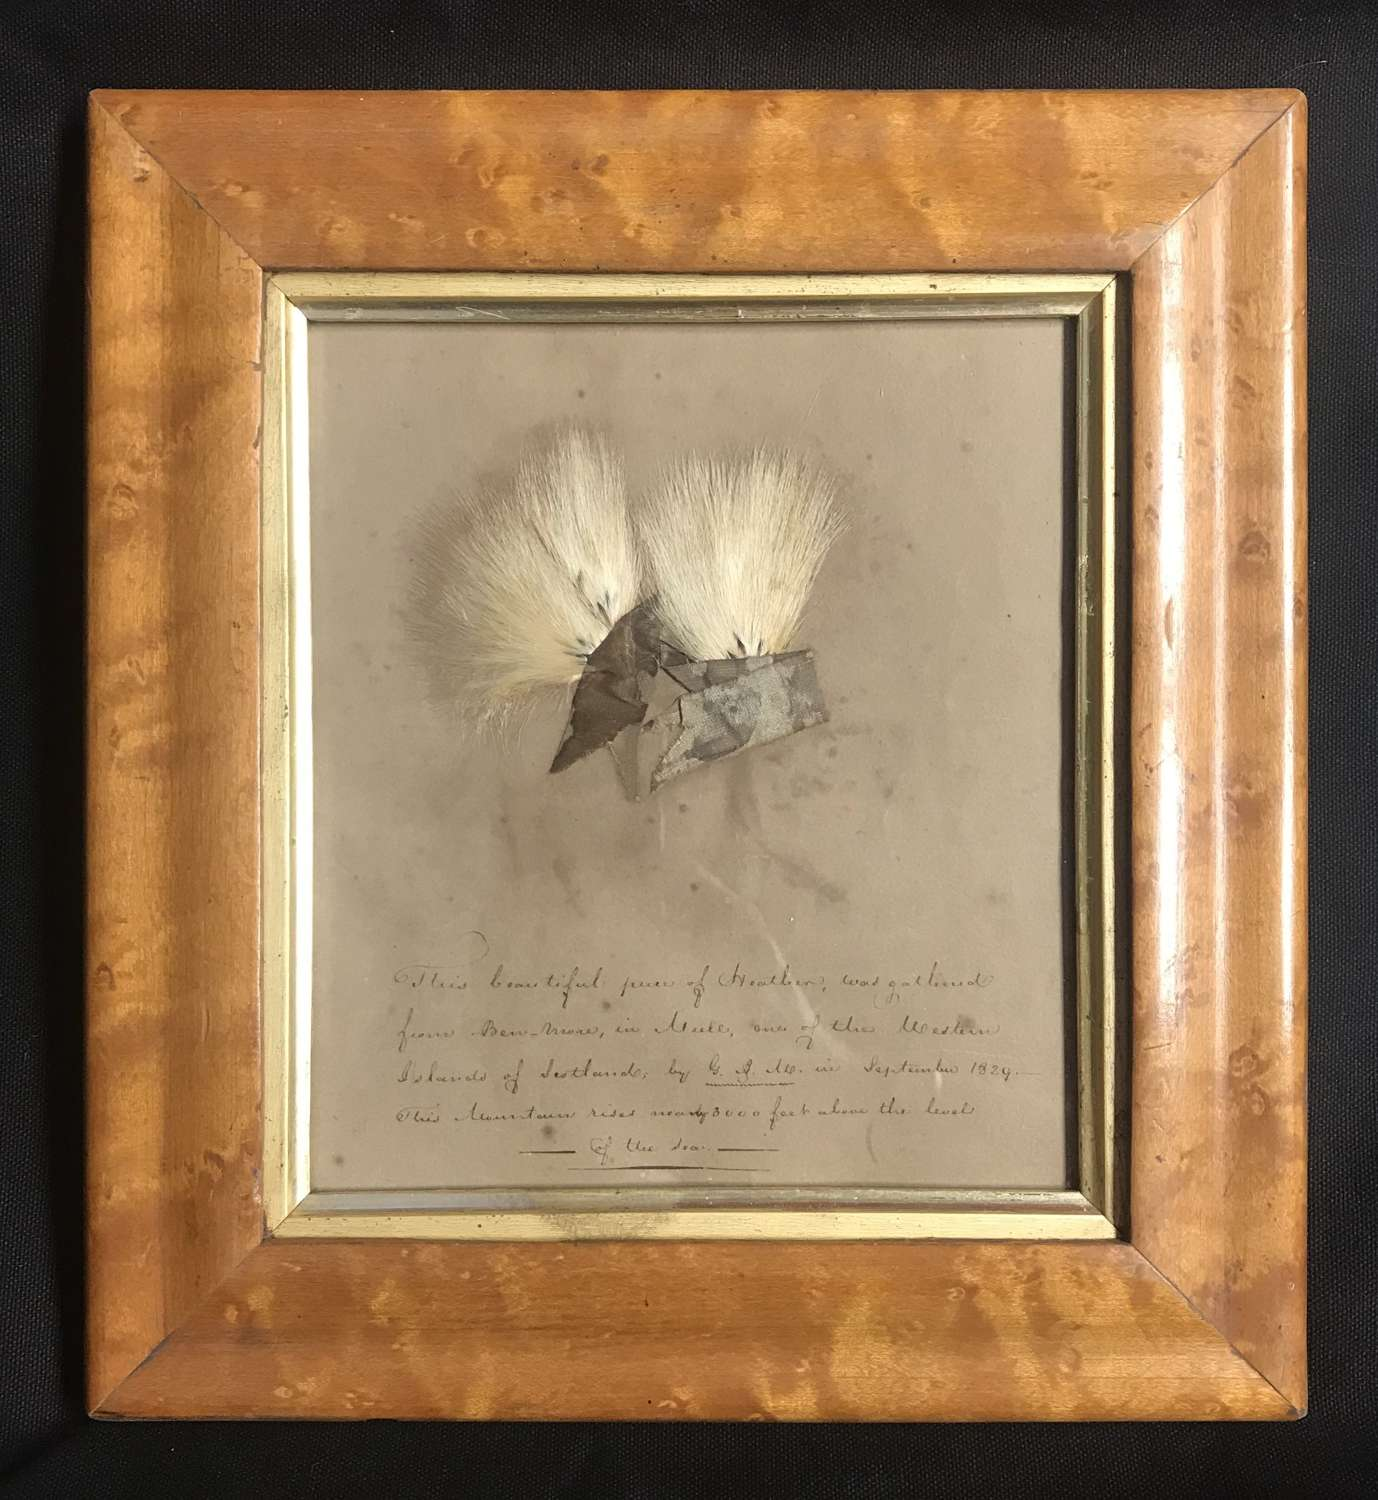 Framed memento - Georgian Scottish Heather